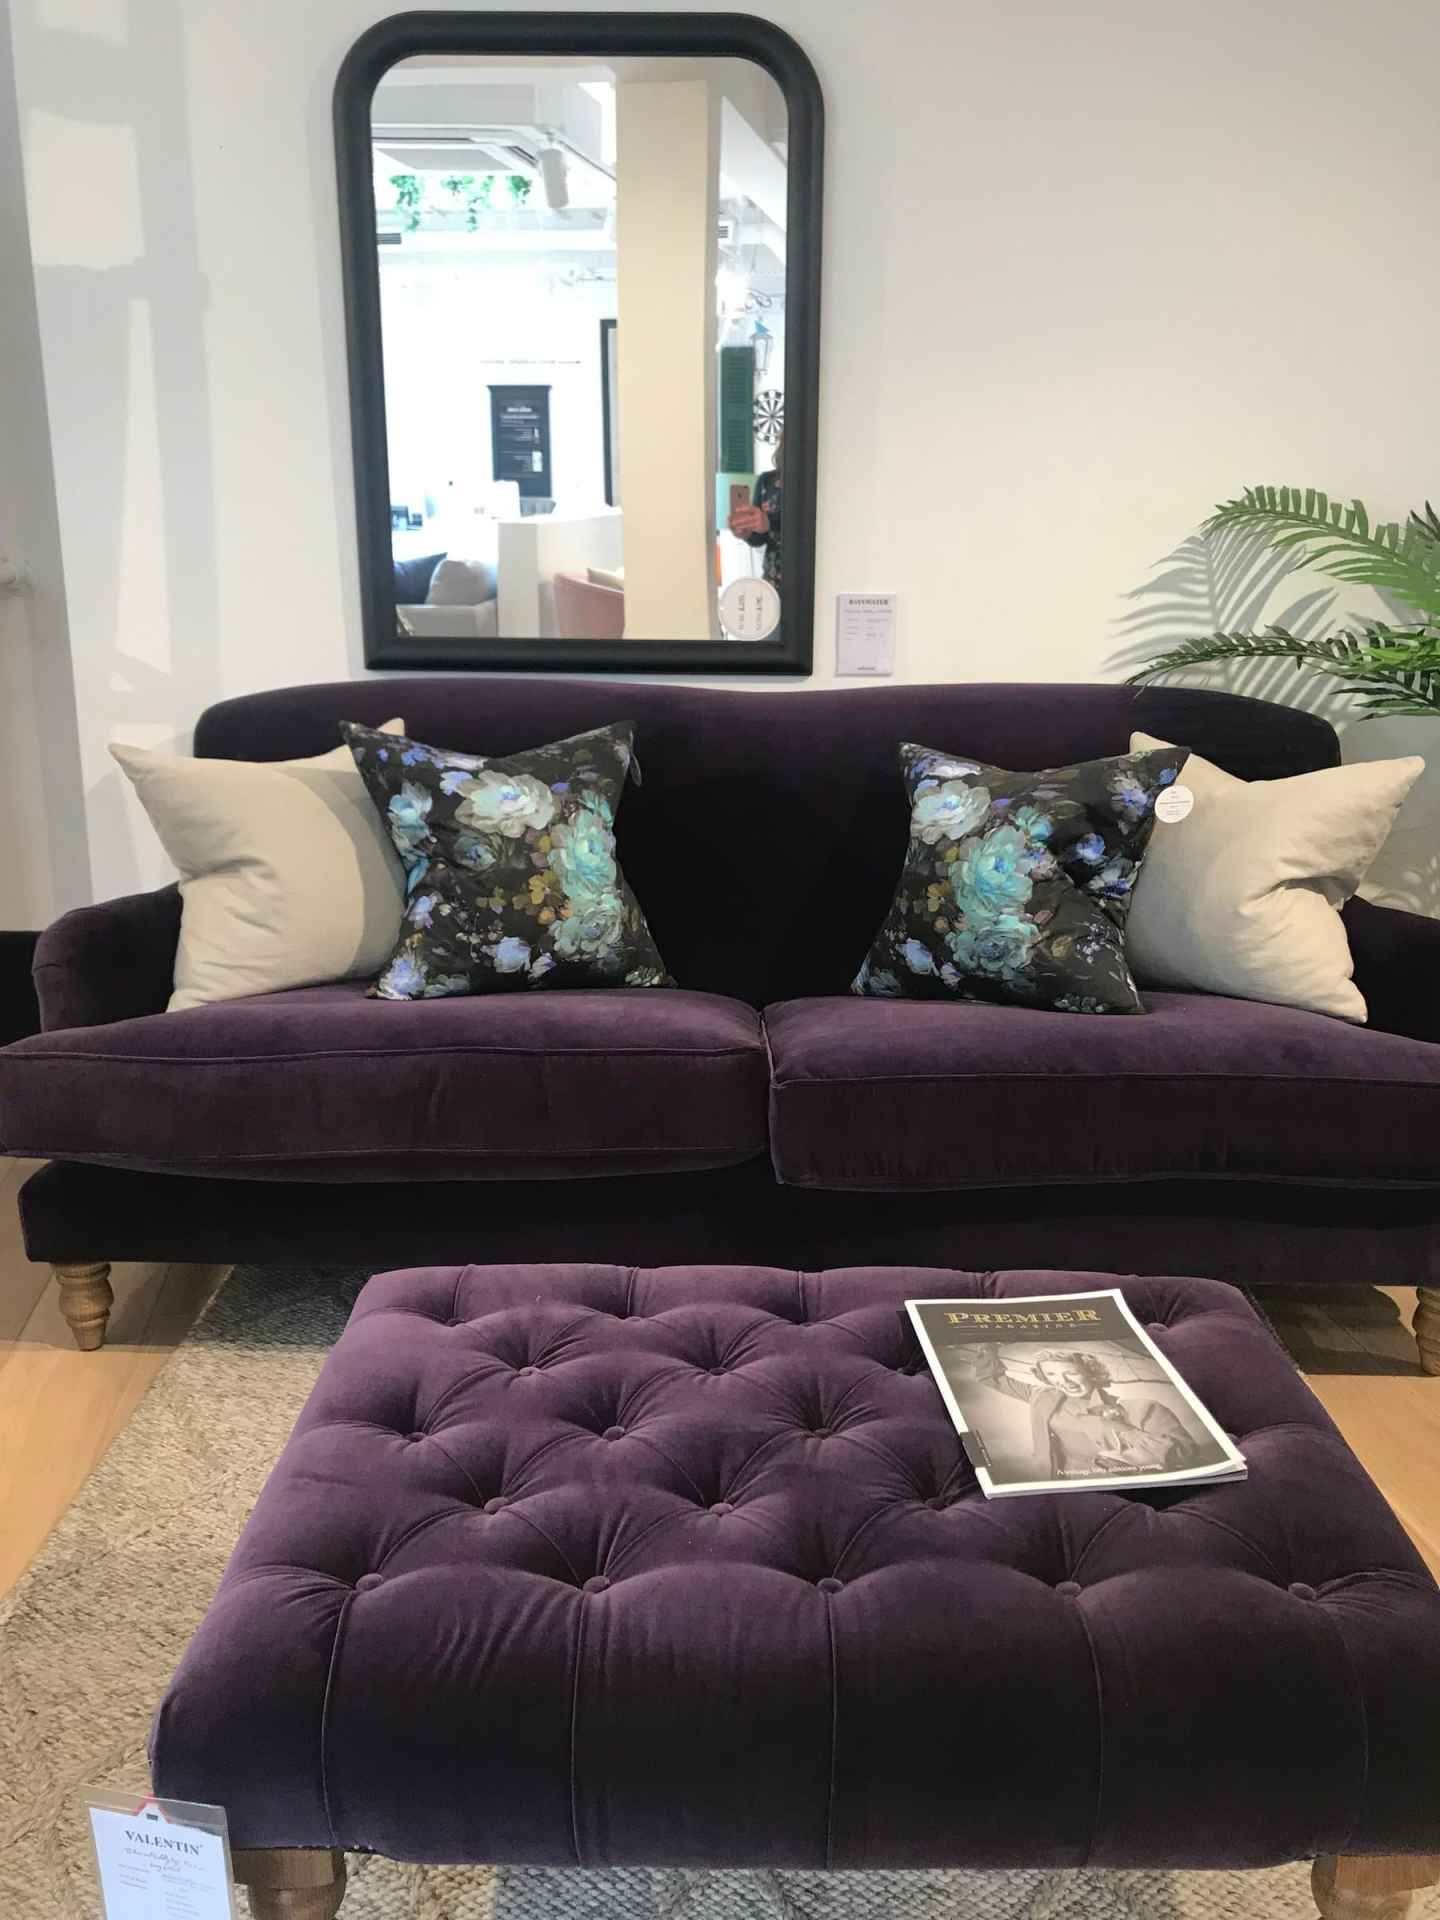 This stunning purple sofa was nestled in next to the bar -  Snowdrop sofa in Plum velvet